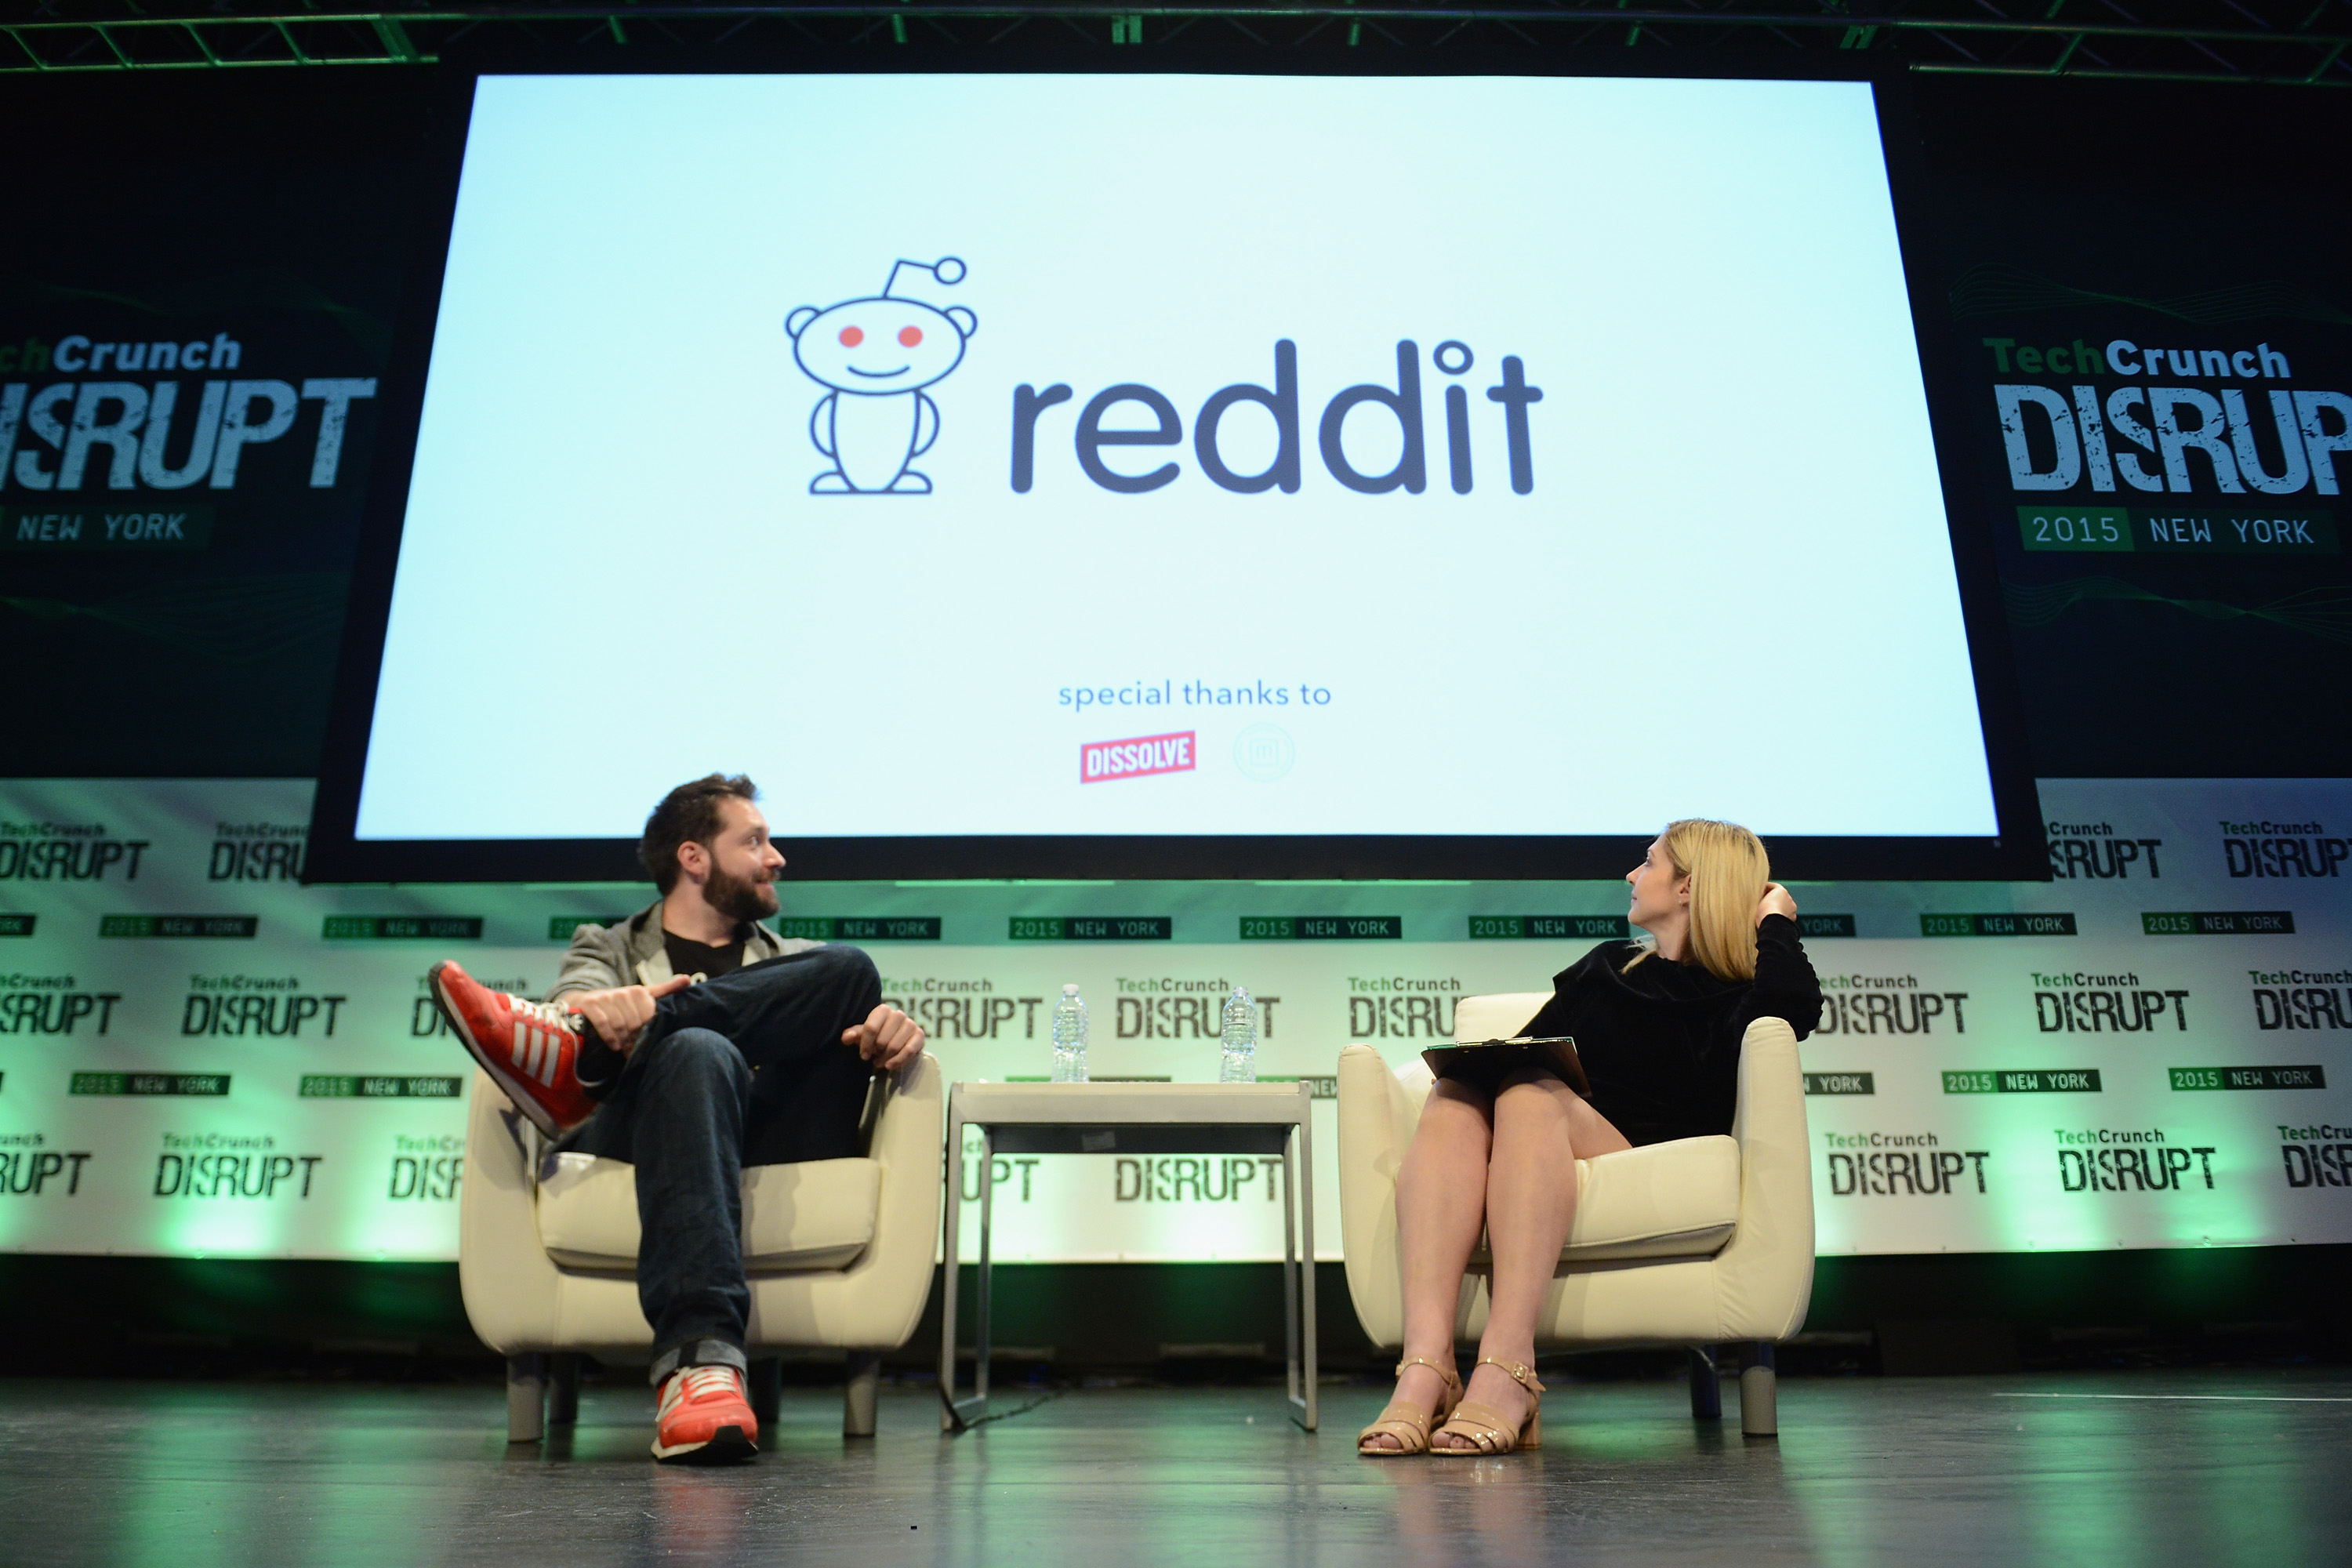 Reddit co-founder Alexis Ohanian (left) speaks onstage during TechCrunch Disrupt NY 2015.